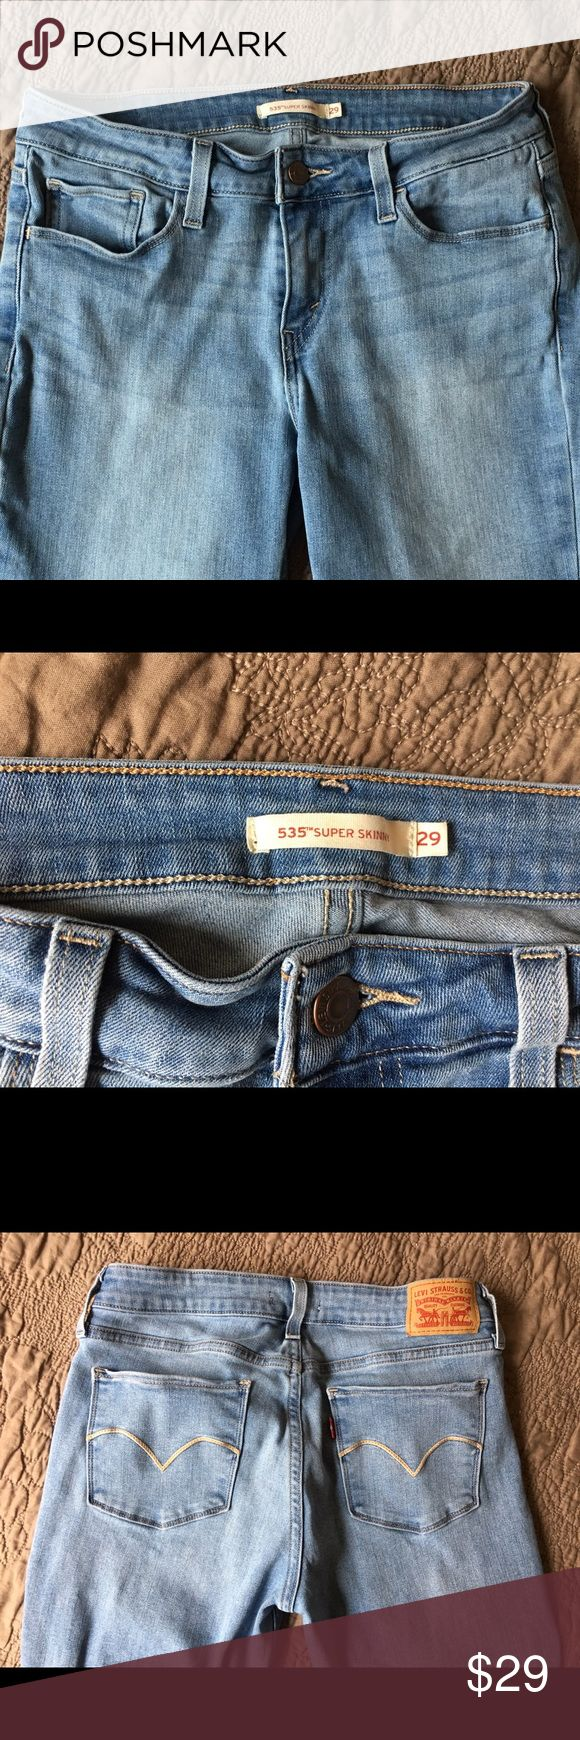 Women's Levi jeans size 29 EUC EUC Levi jeans. Size 29. Gorgeous jeans! Open to offers and negotiations!Thanks for looking and check out my other listings! Bundle and save!! Levi's Jeans Skinny